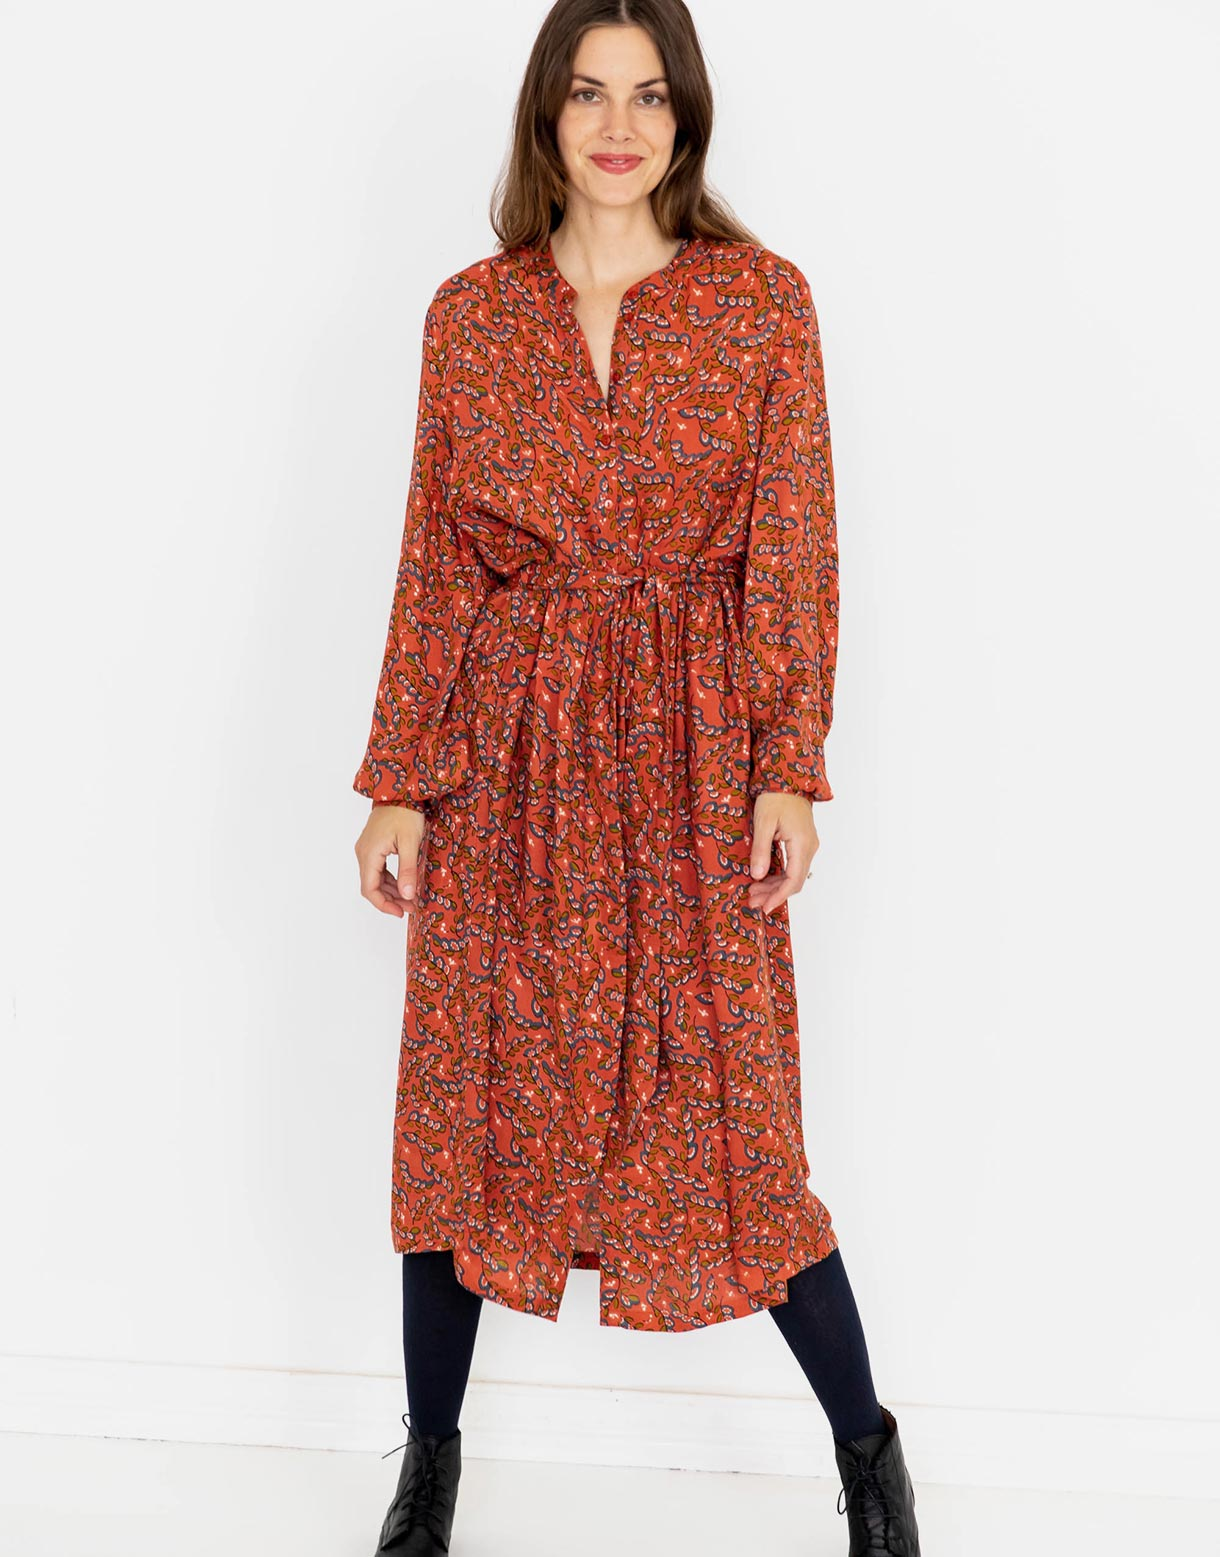 Chloe Dress in Arbor *sustainable viscose